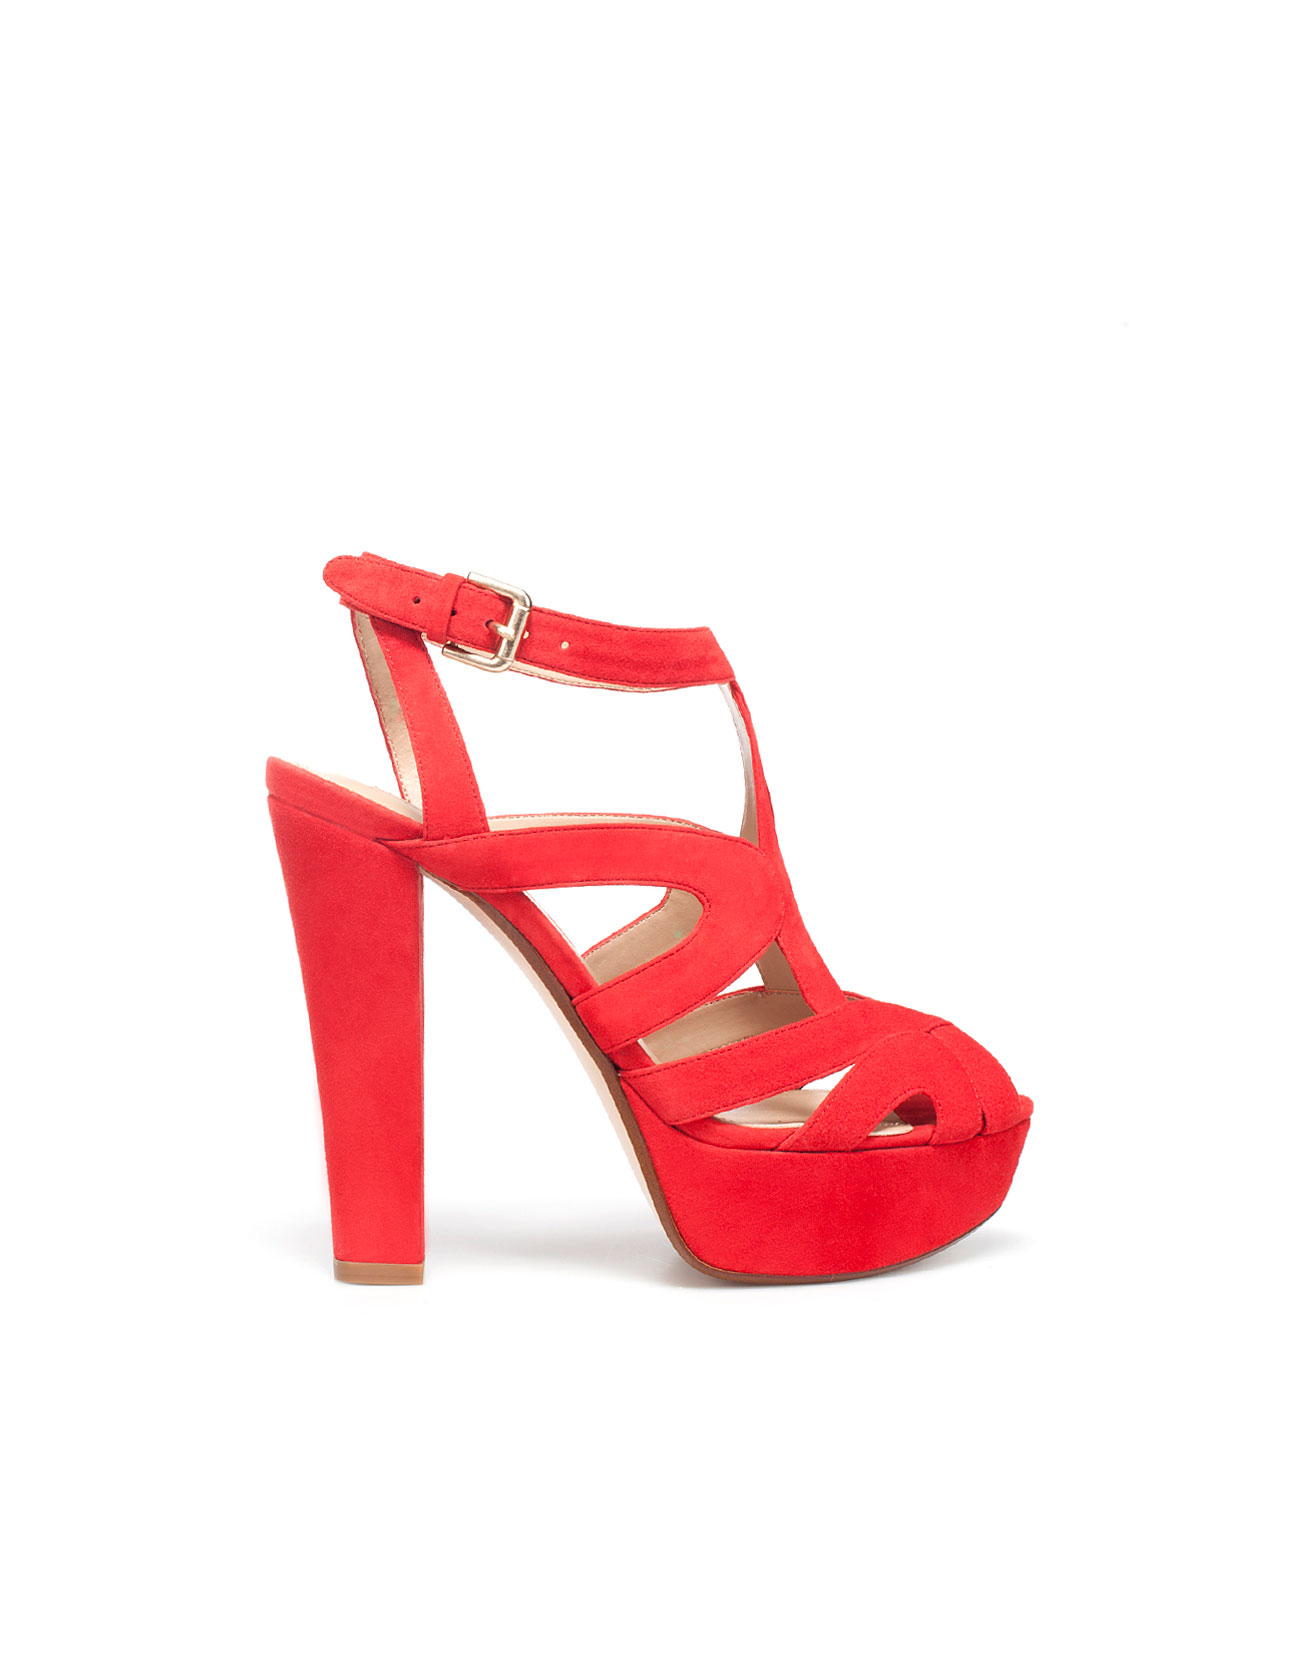 High Heel Platform Sandal by Zara